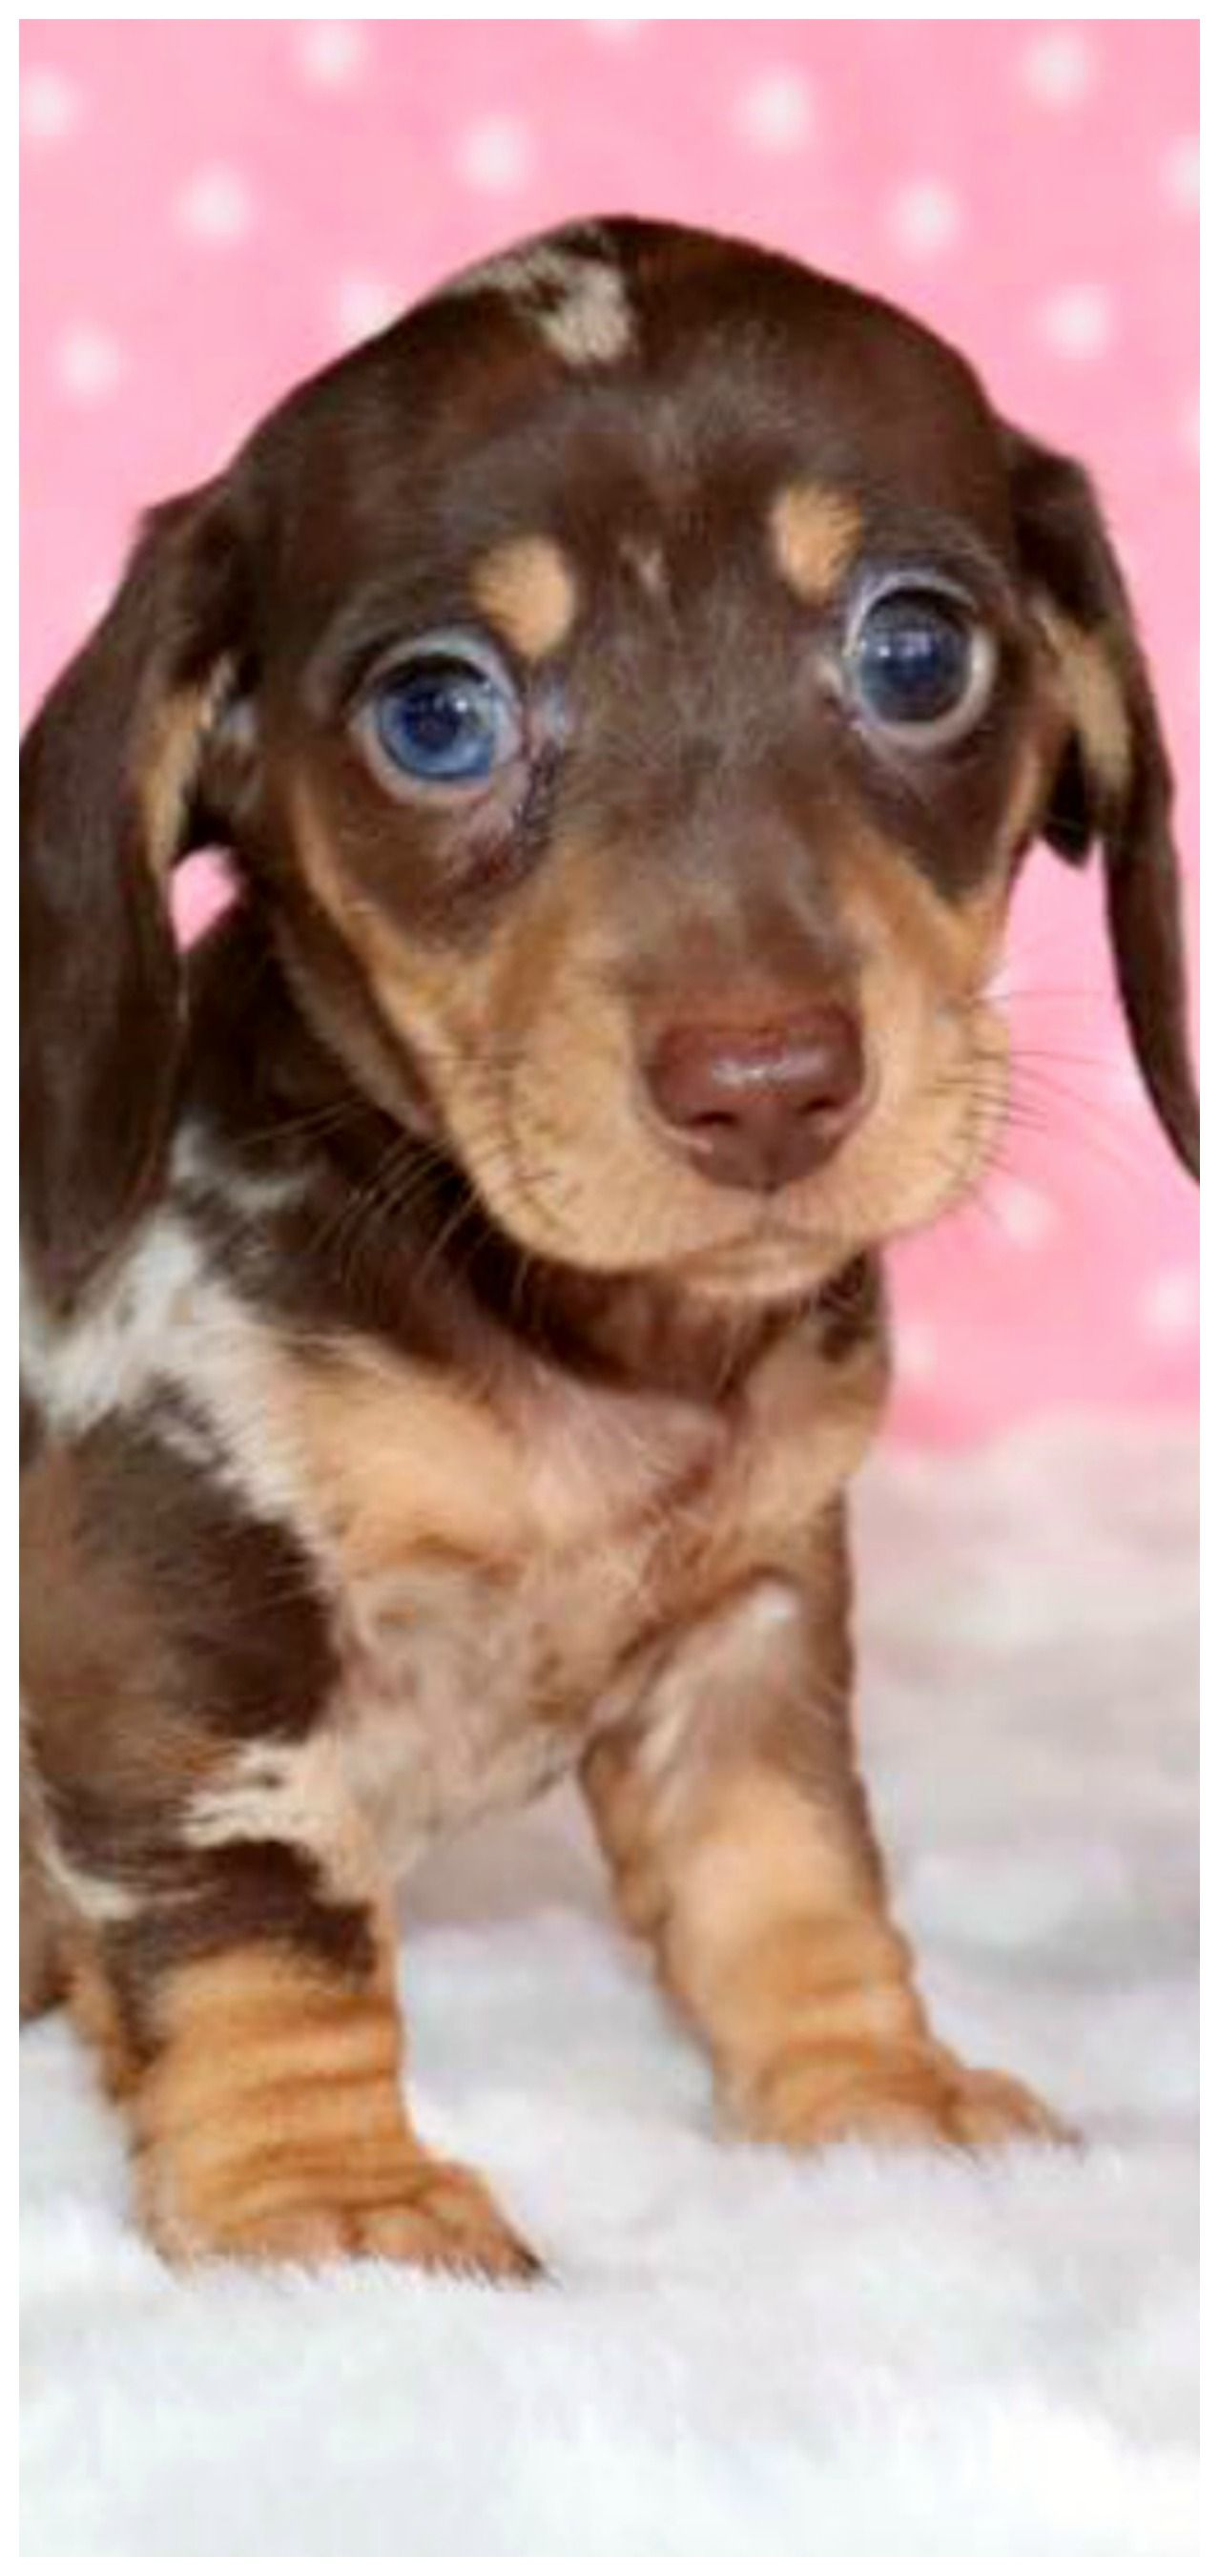 Dog World Image By Tam S Boards Dachshund Puppy Miniature